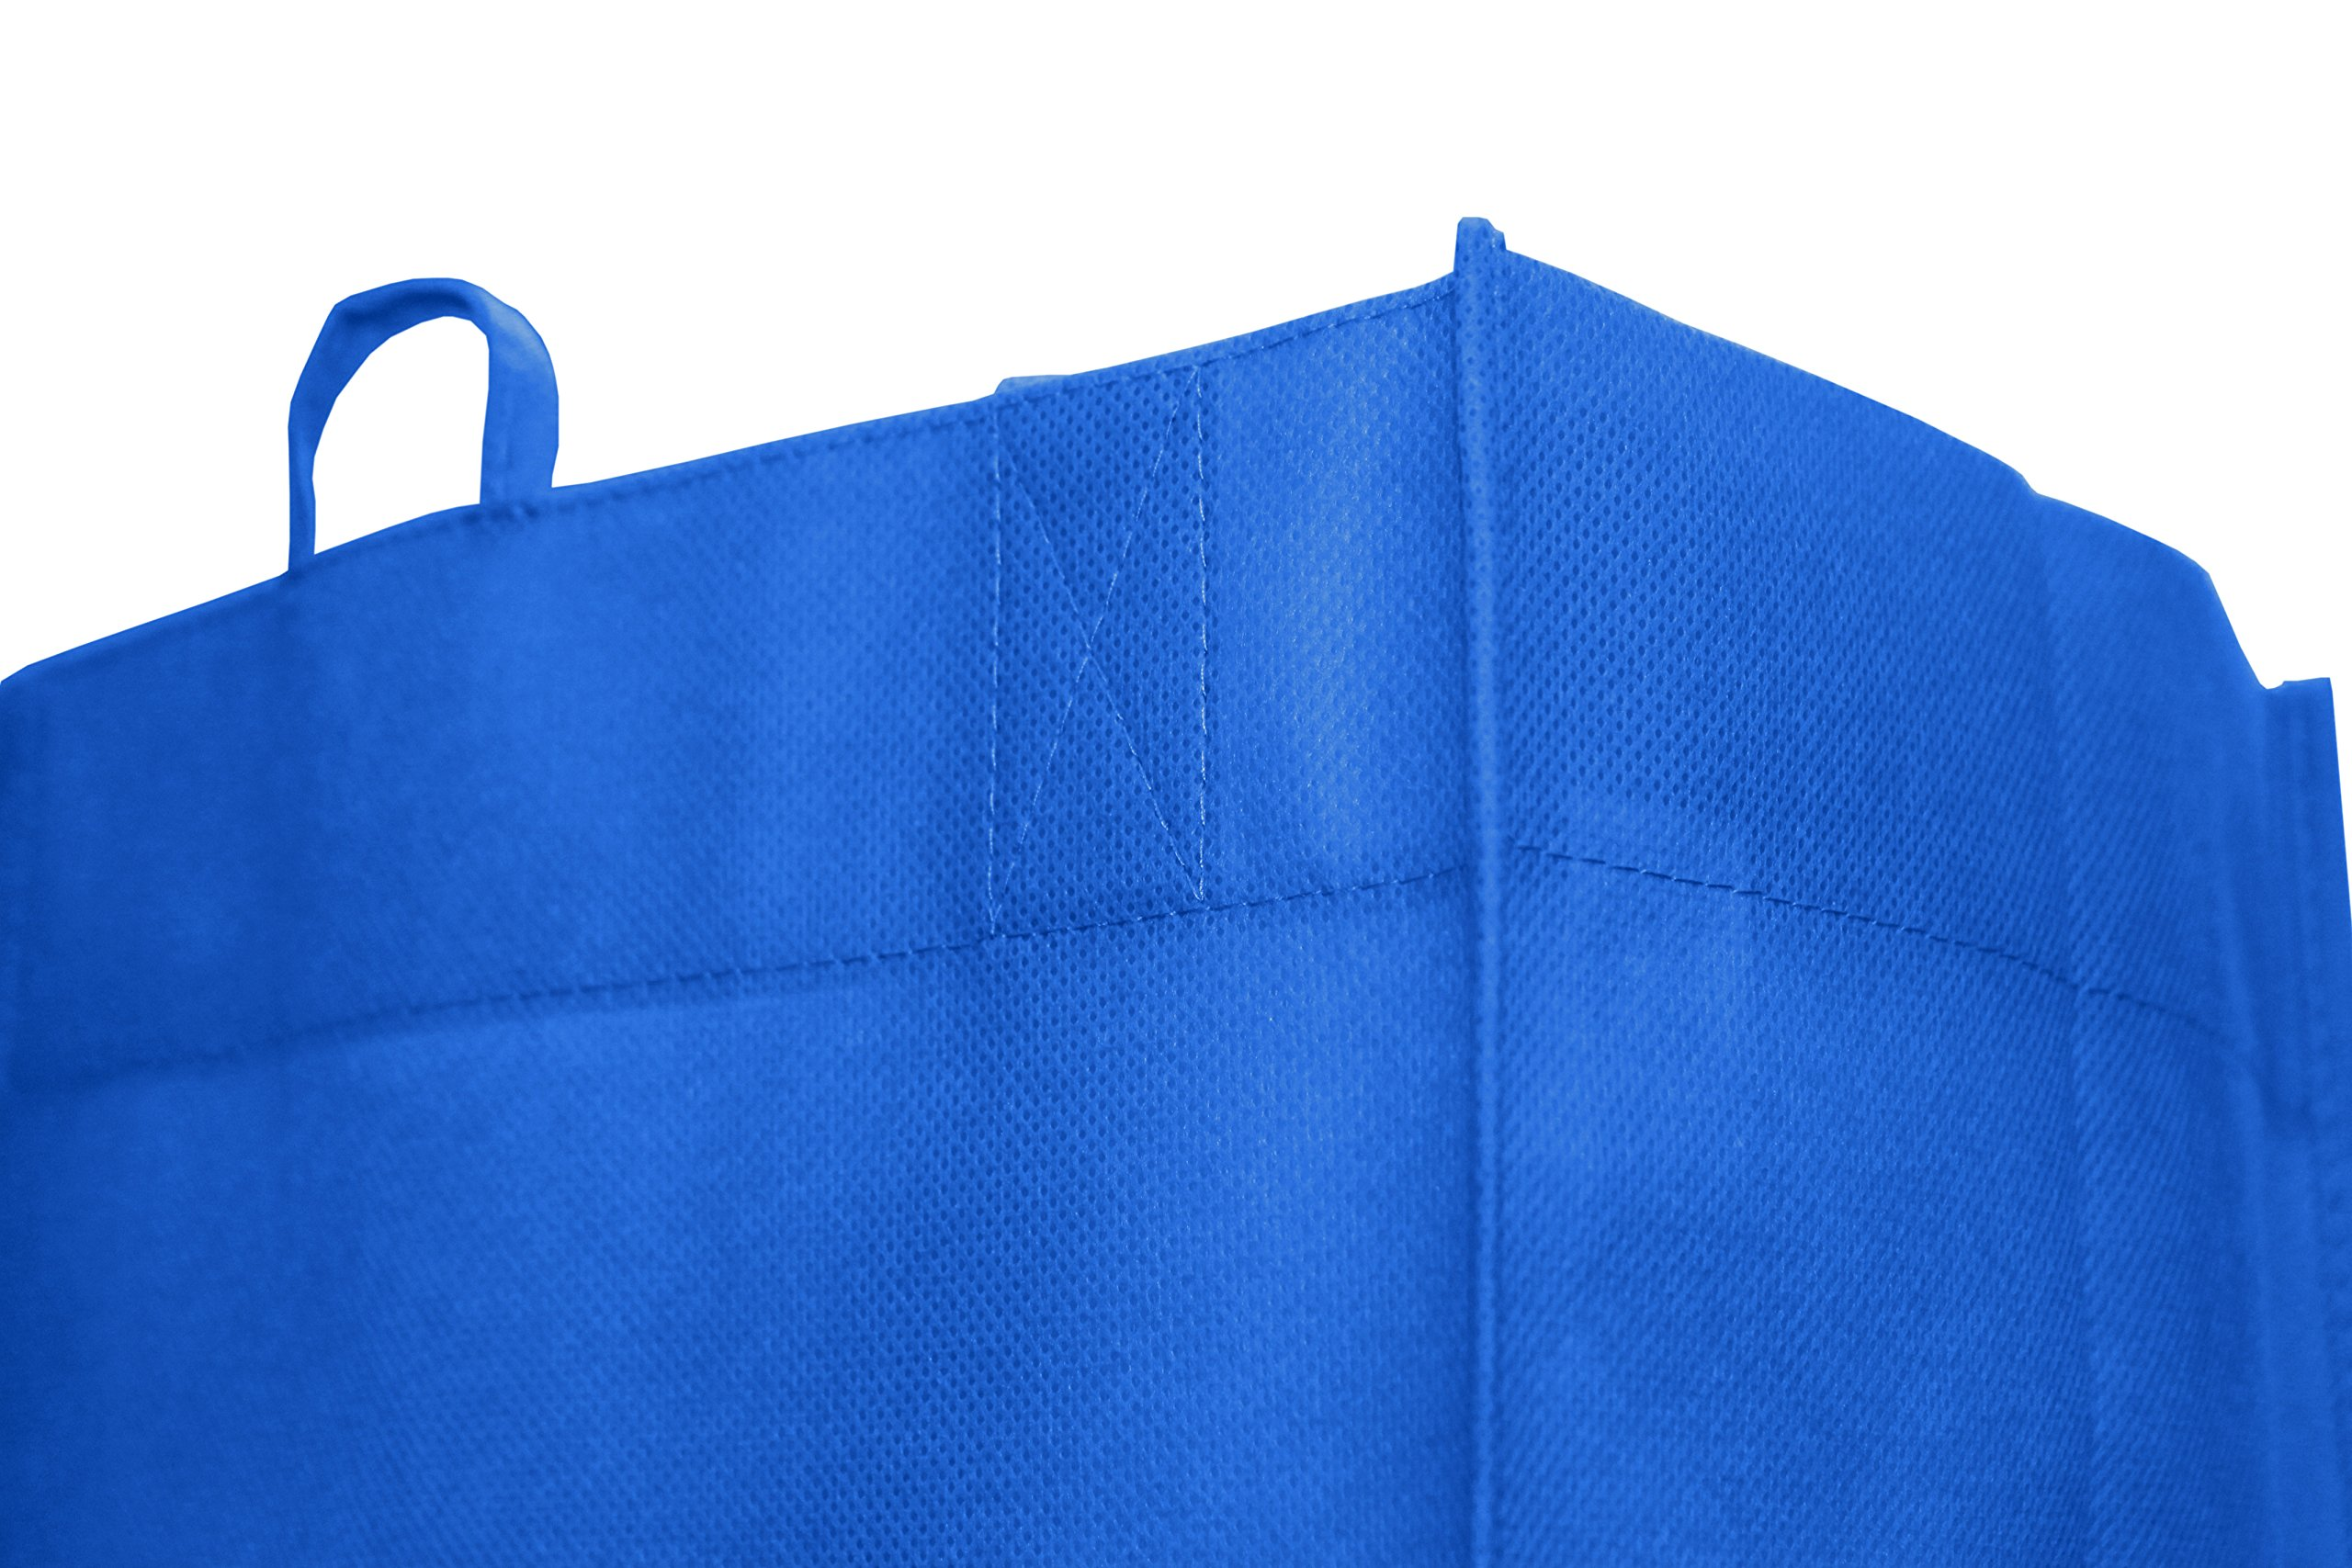 Earthwise Reusable Grocery Bags Shopping Totes Eco Friendly (10 Piece Pack) by Earthwise (Image #3)